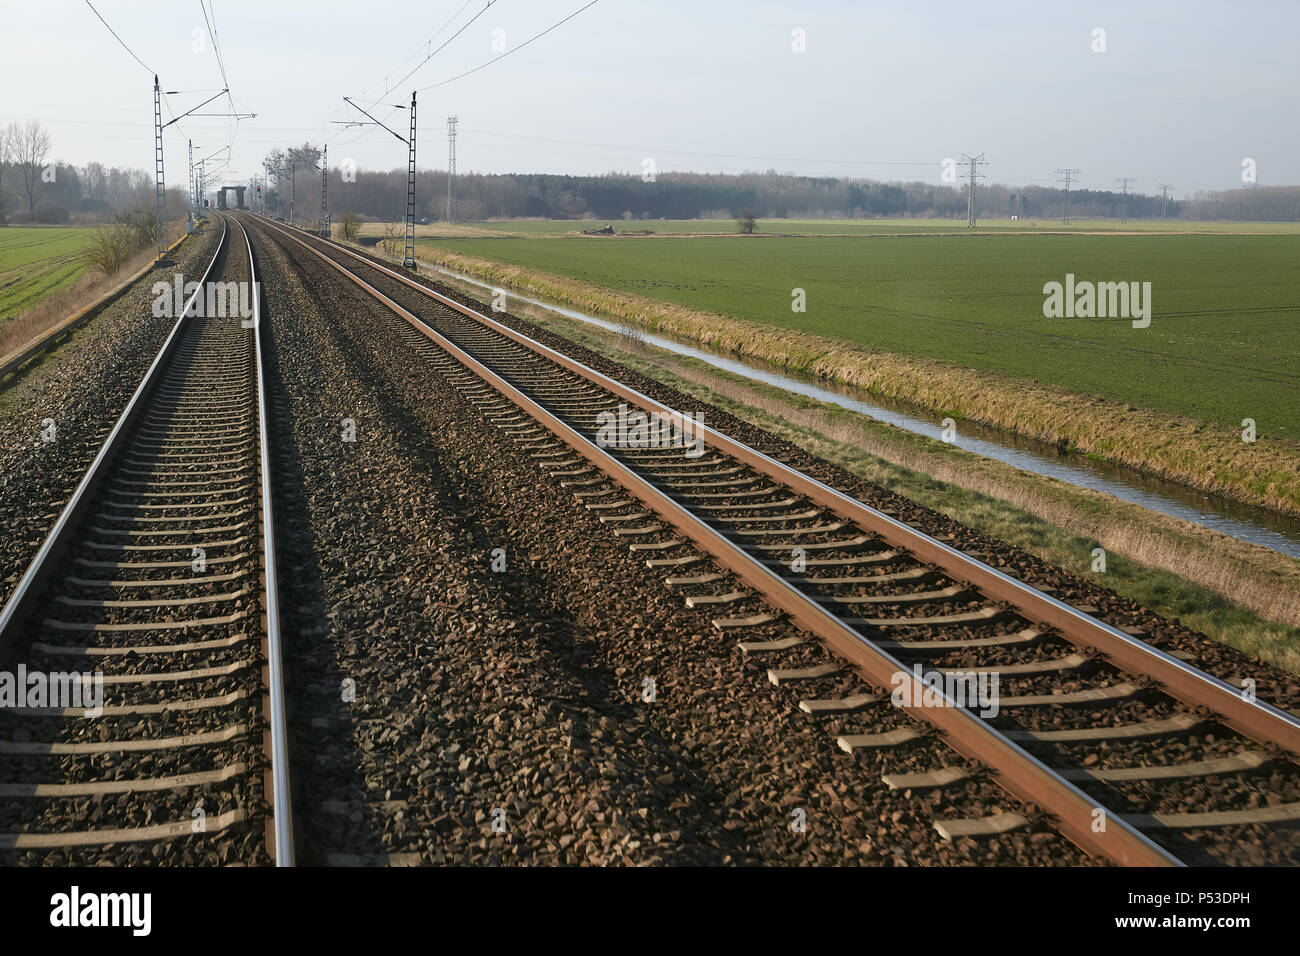 Schoenwalde, Brandenburg, Germany - View from the driver's station of a regional train on a two-lane railway line. - Stock Image